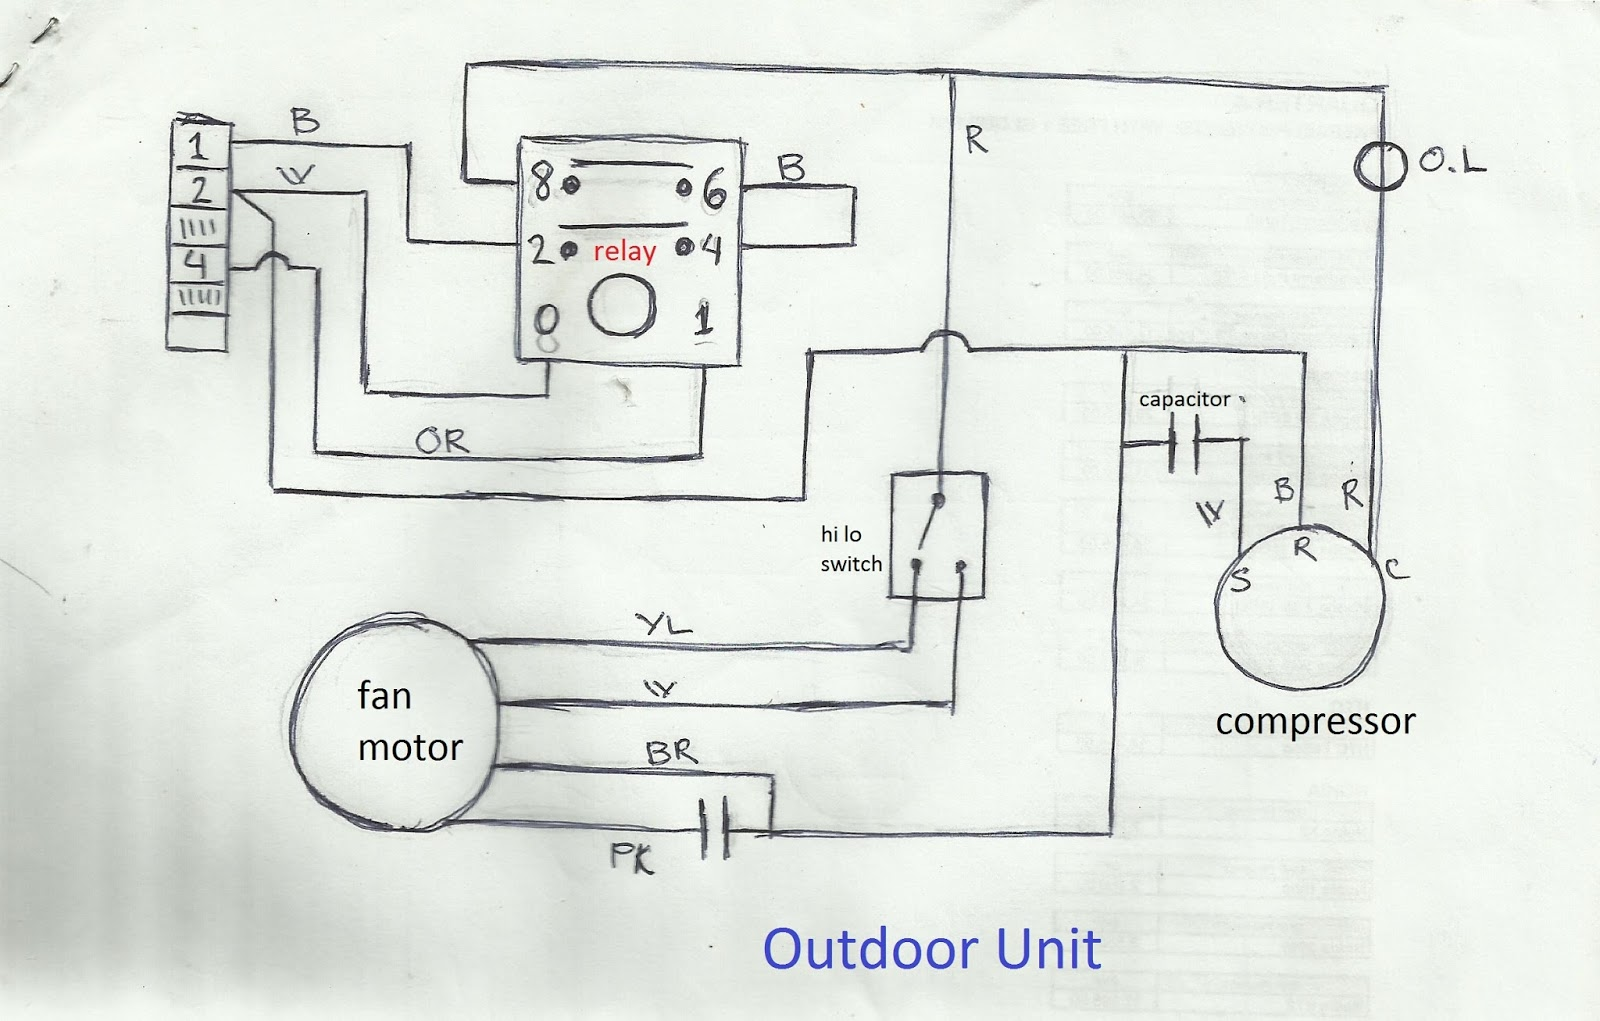 air conditioner fan wiring diagram wiring library split ac wiring diagram simple condenser wiring schematic reveolution [ 1600 x 1021 Pixel ]